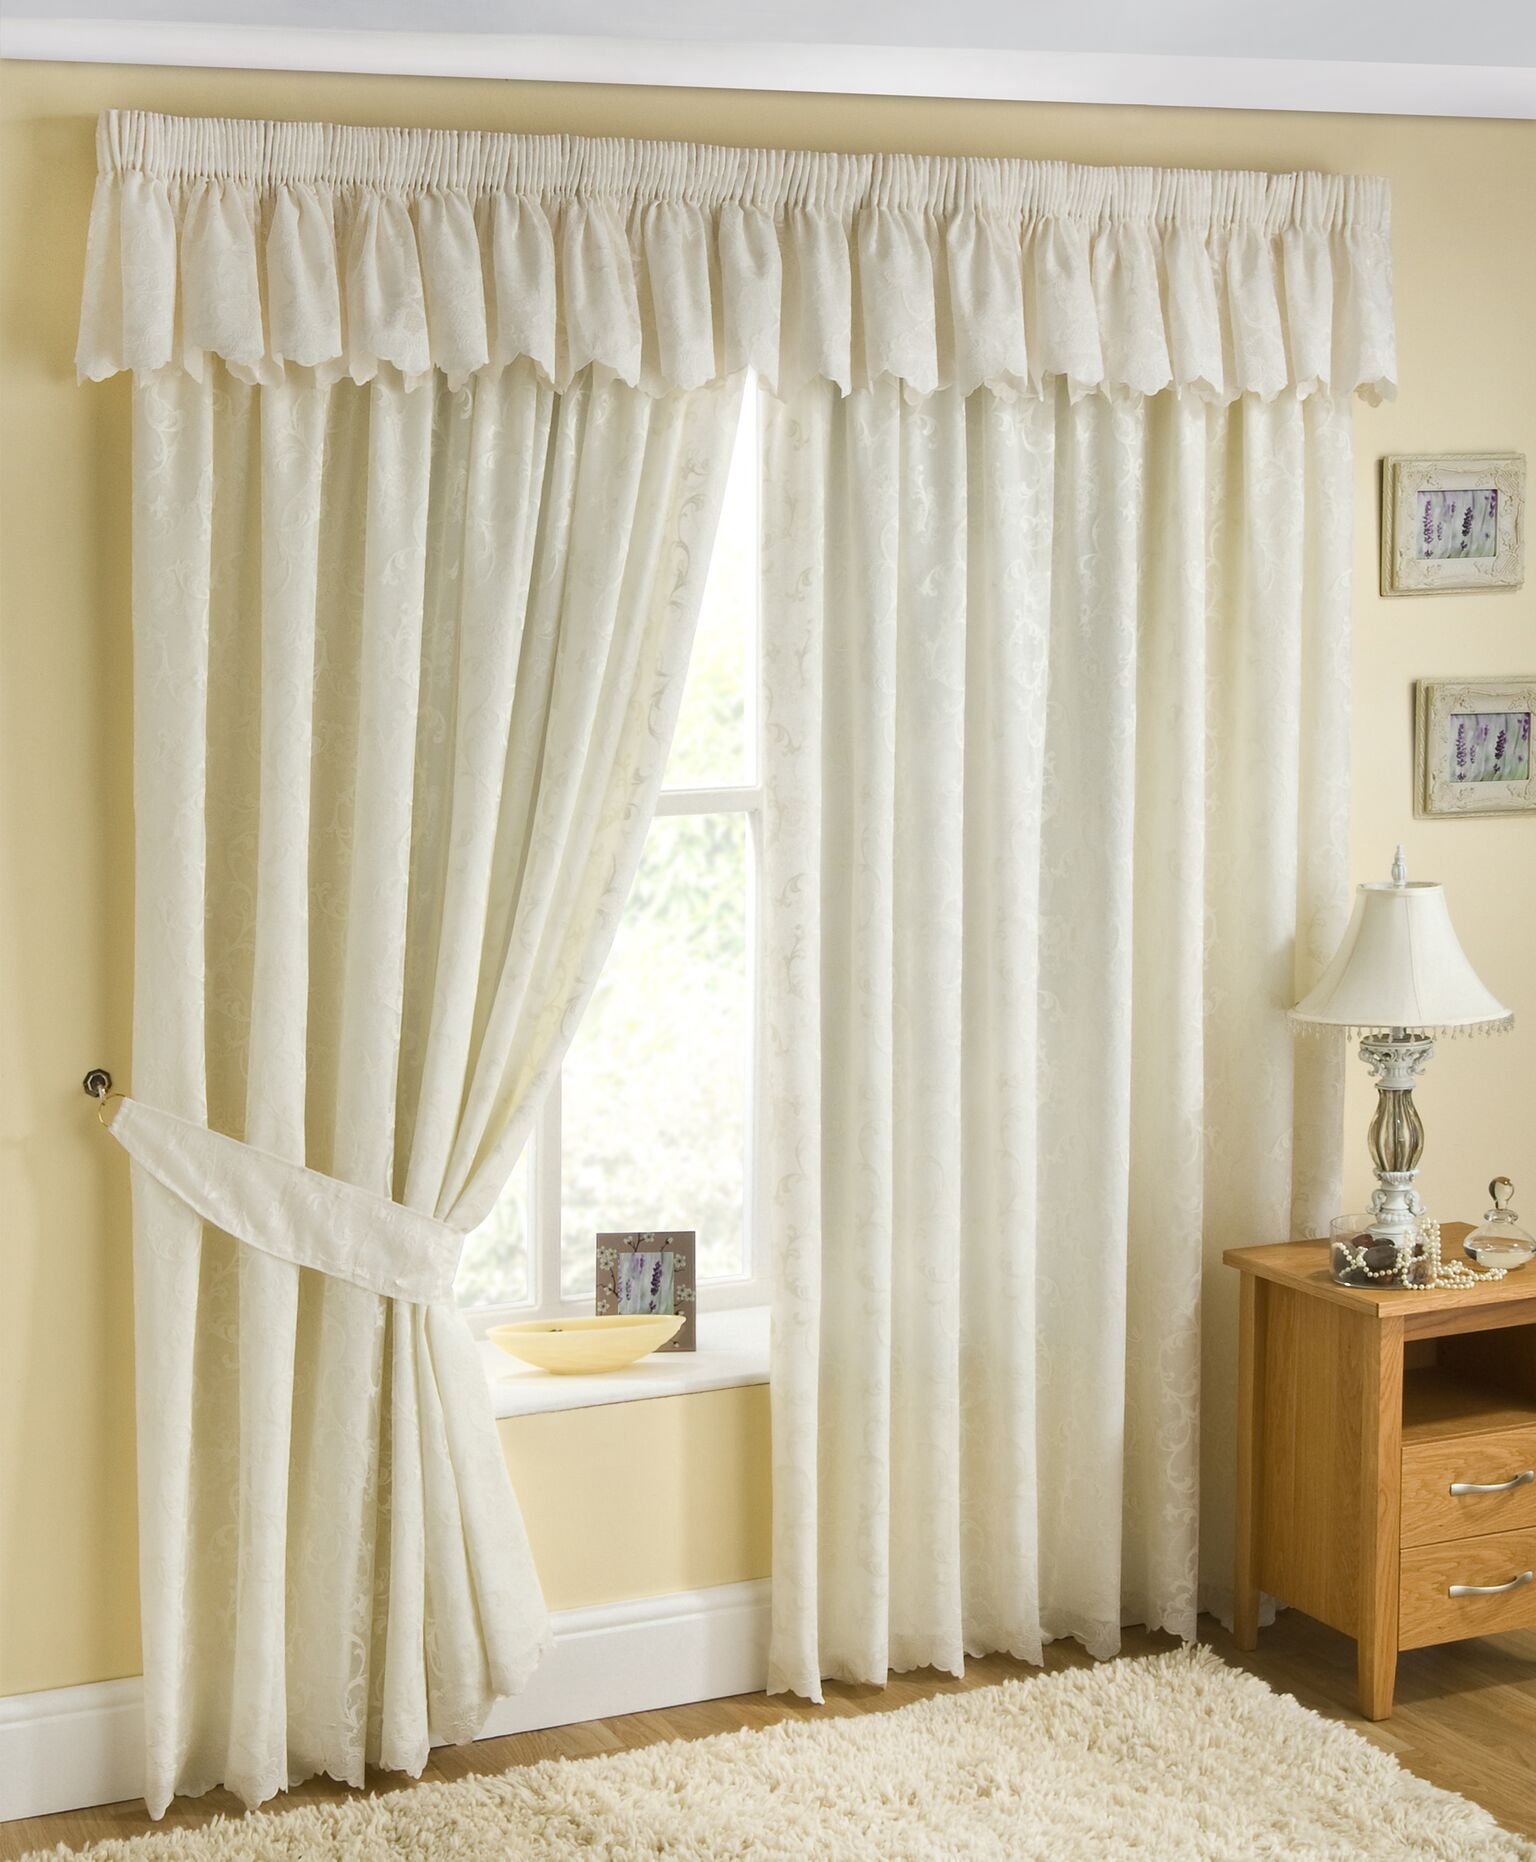 Perth Lined Voile Curtains Curtains At Home